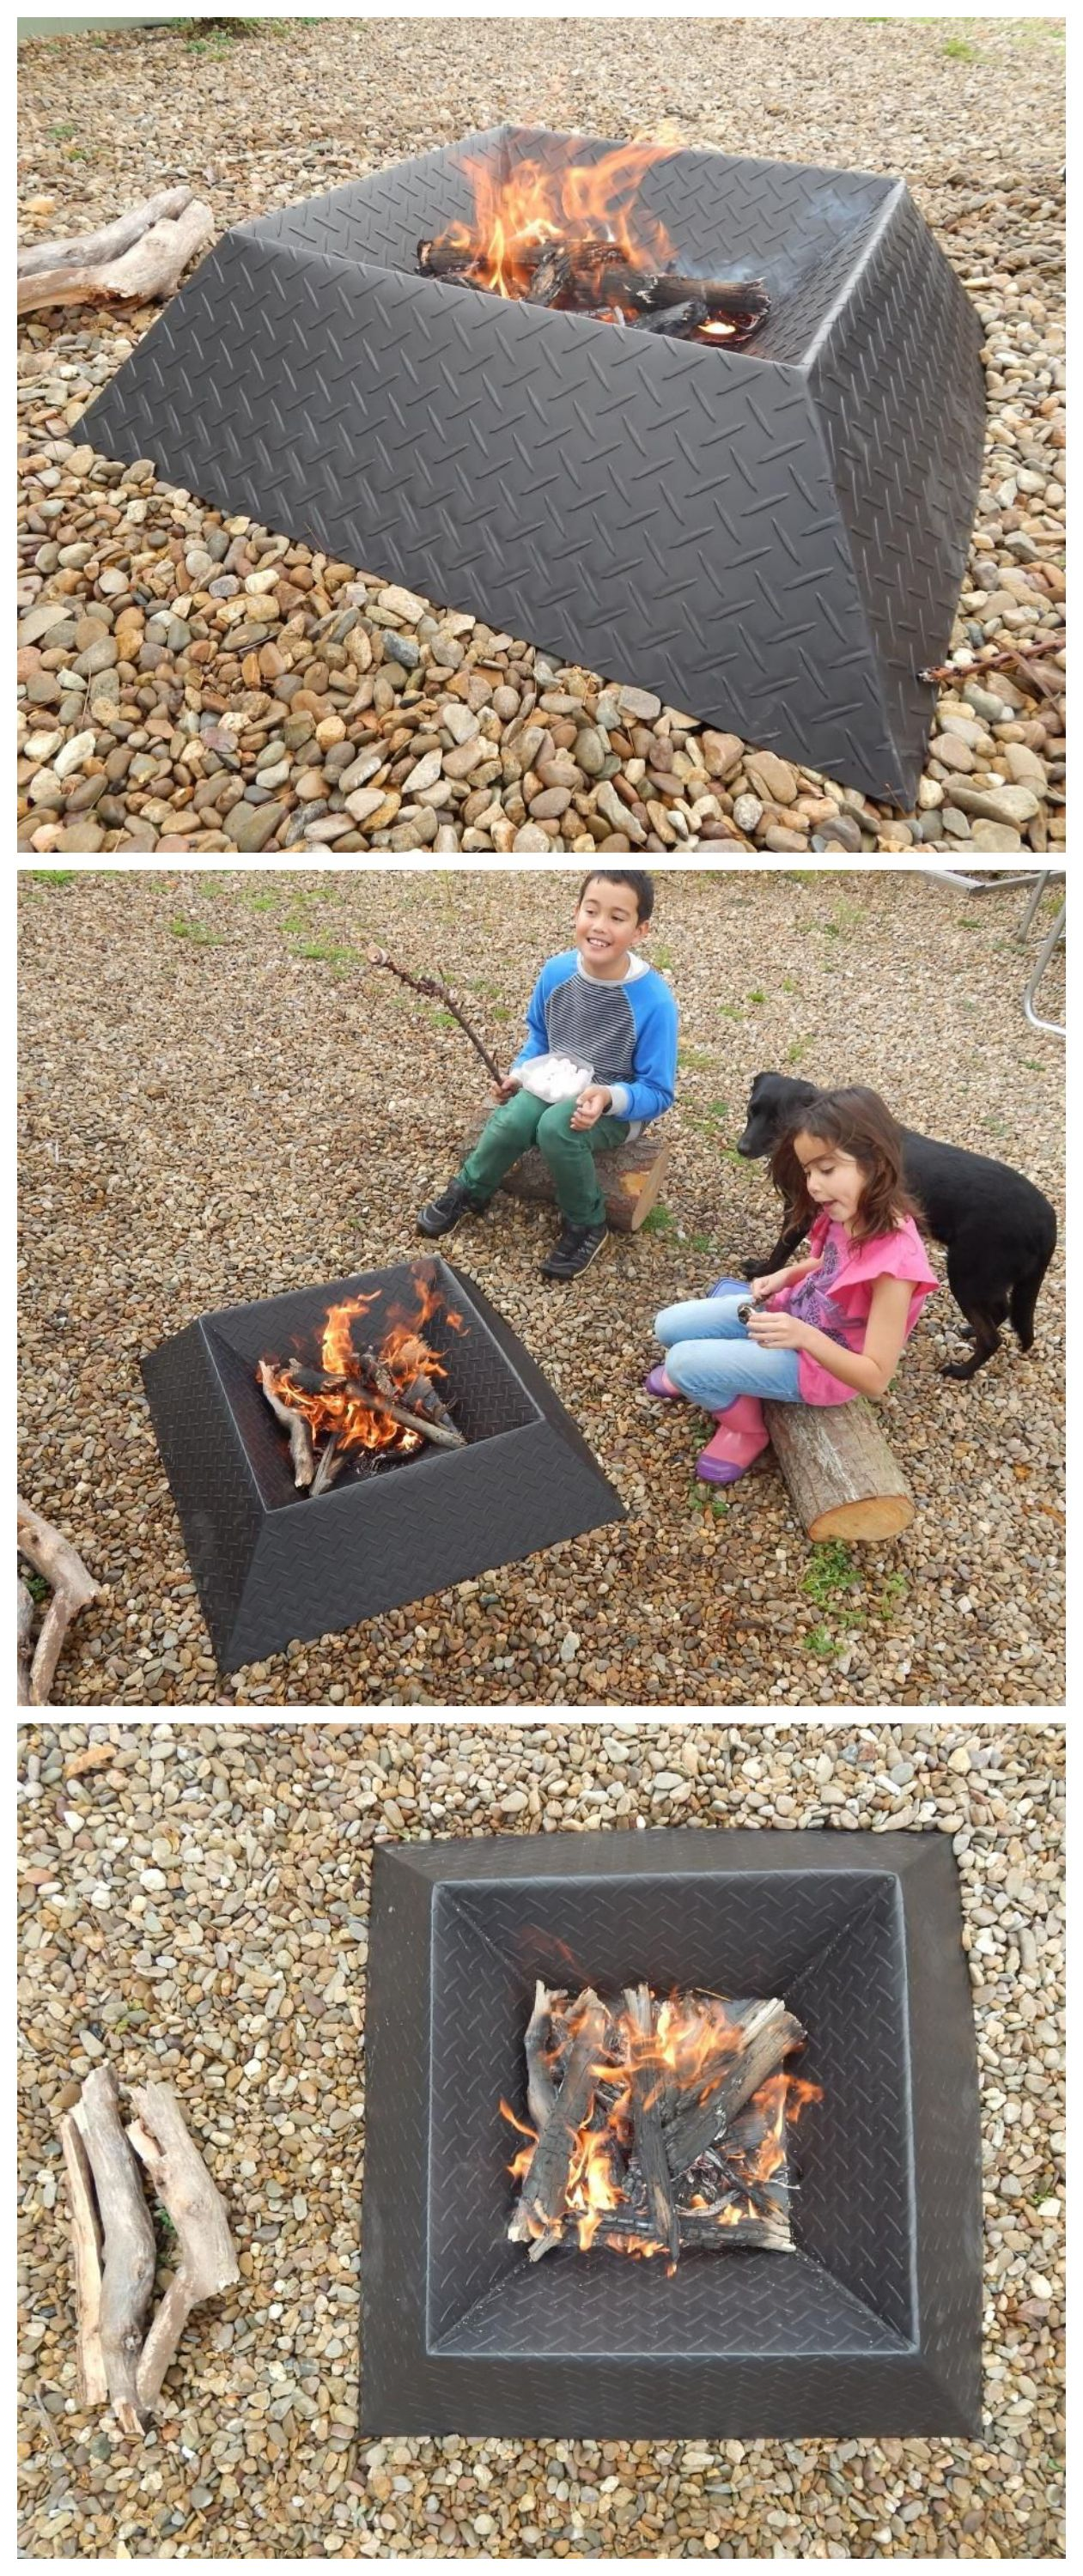 How To Make A Cool And Compact Fire Pit From Half A Sheet Of Steel Welding Projects Modern Fire Pit Outdoor Fire